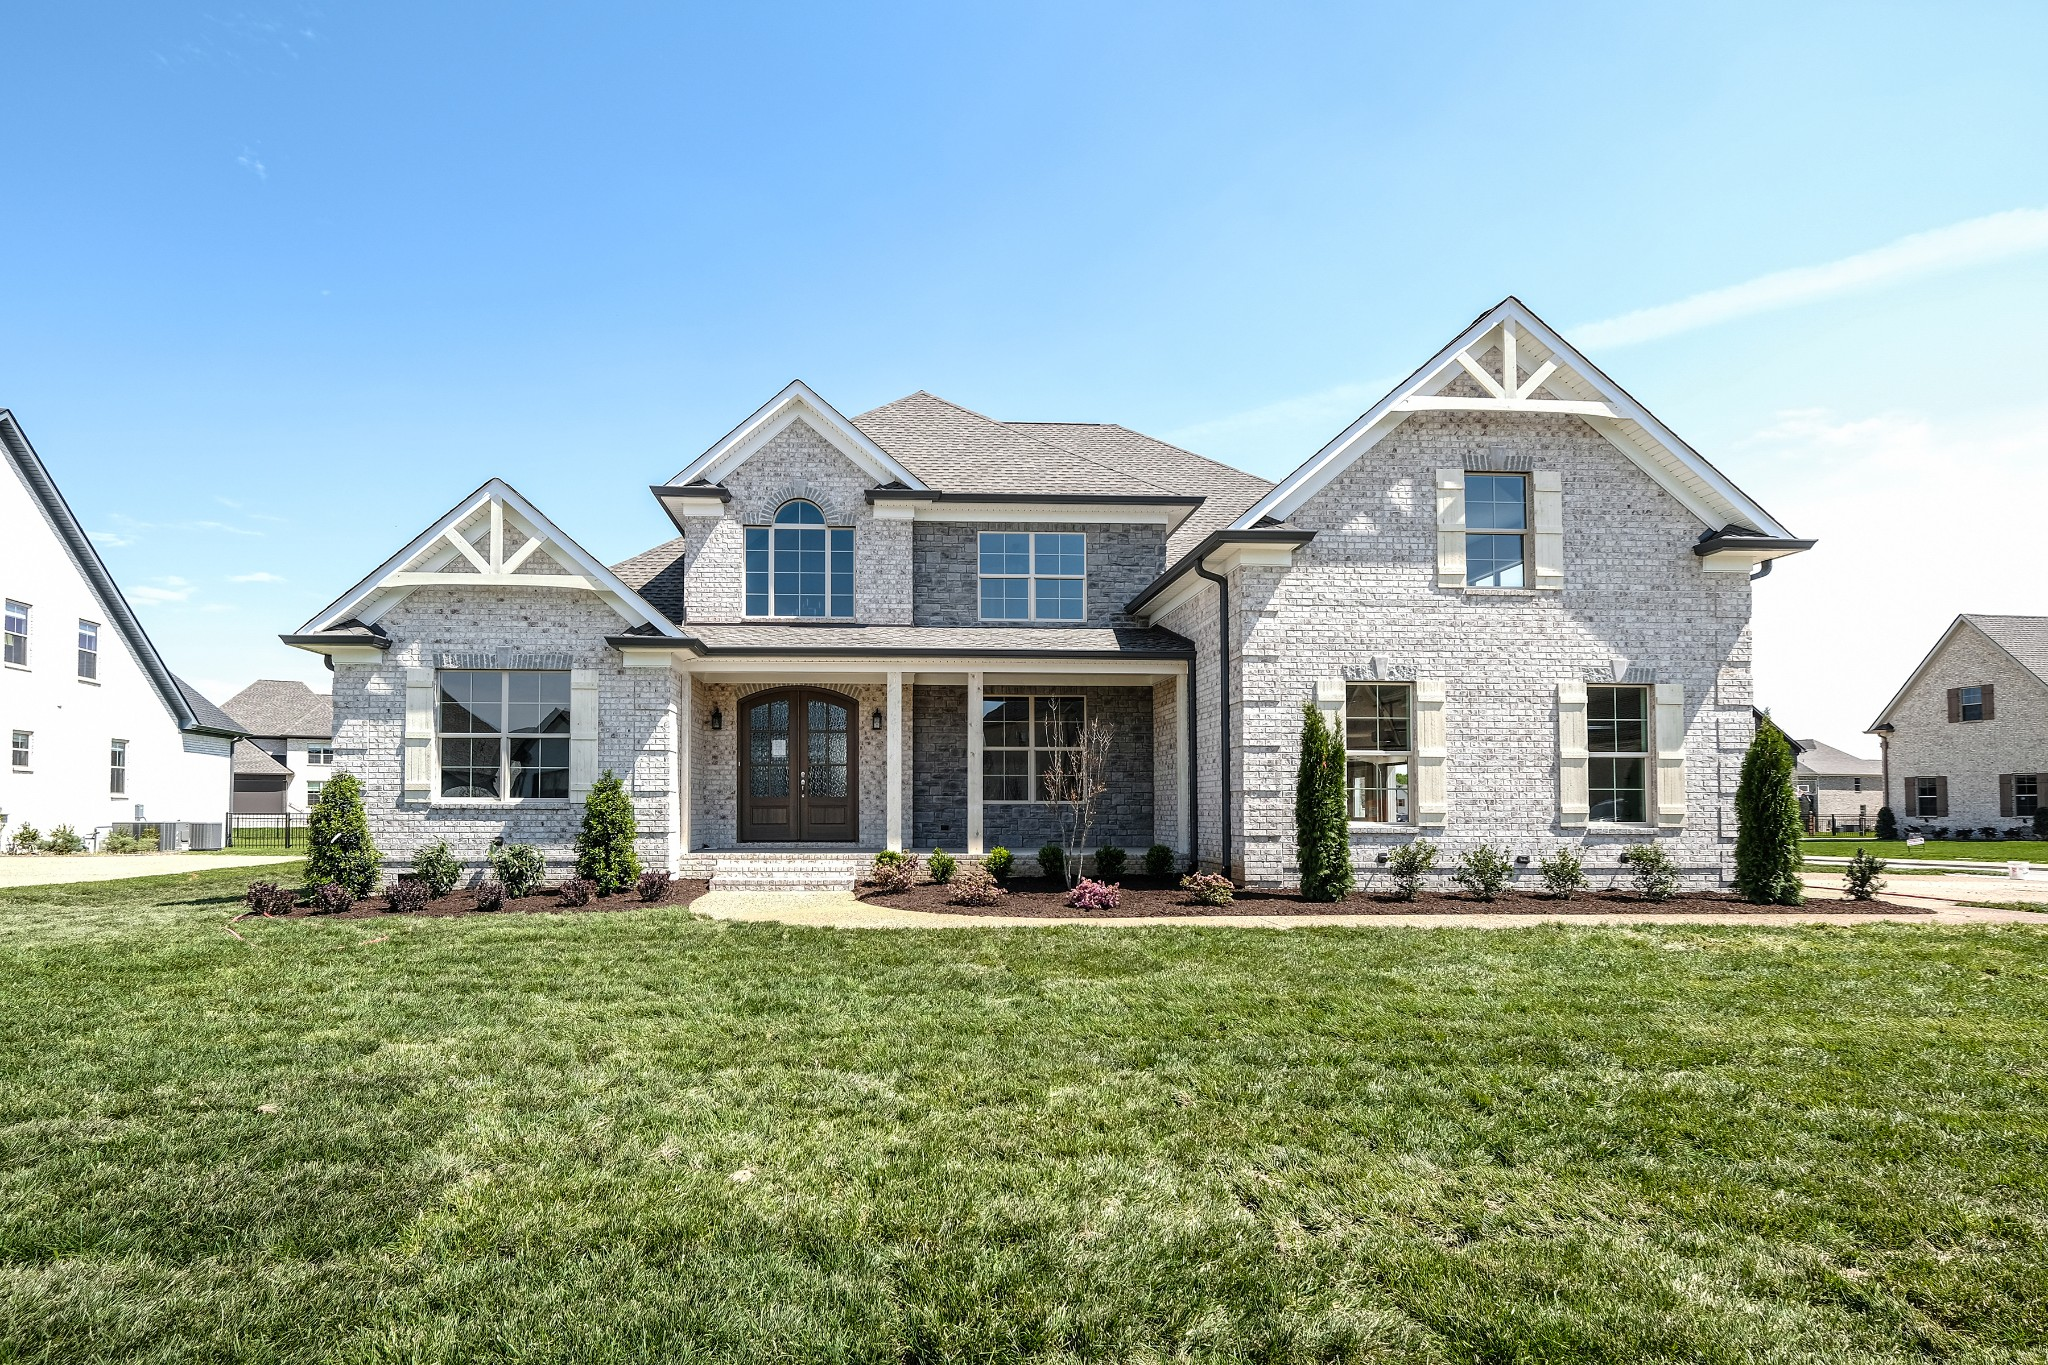 6025 Trout Ln (Lot 257), Spring Hill, Tennessee